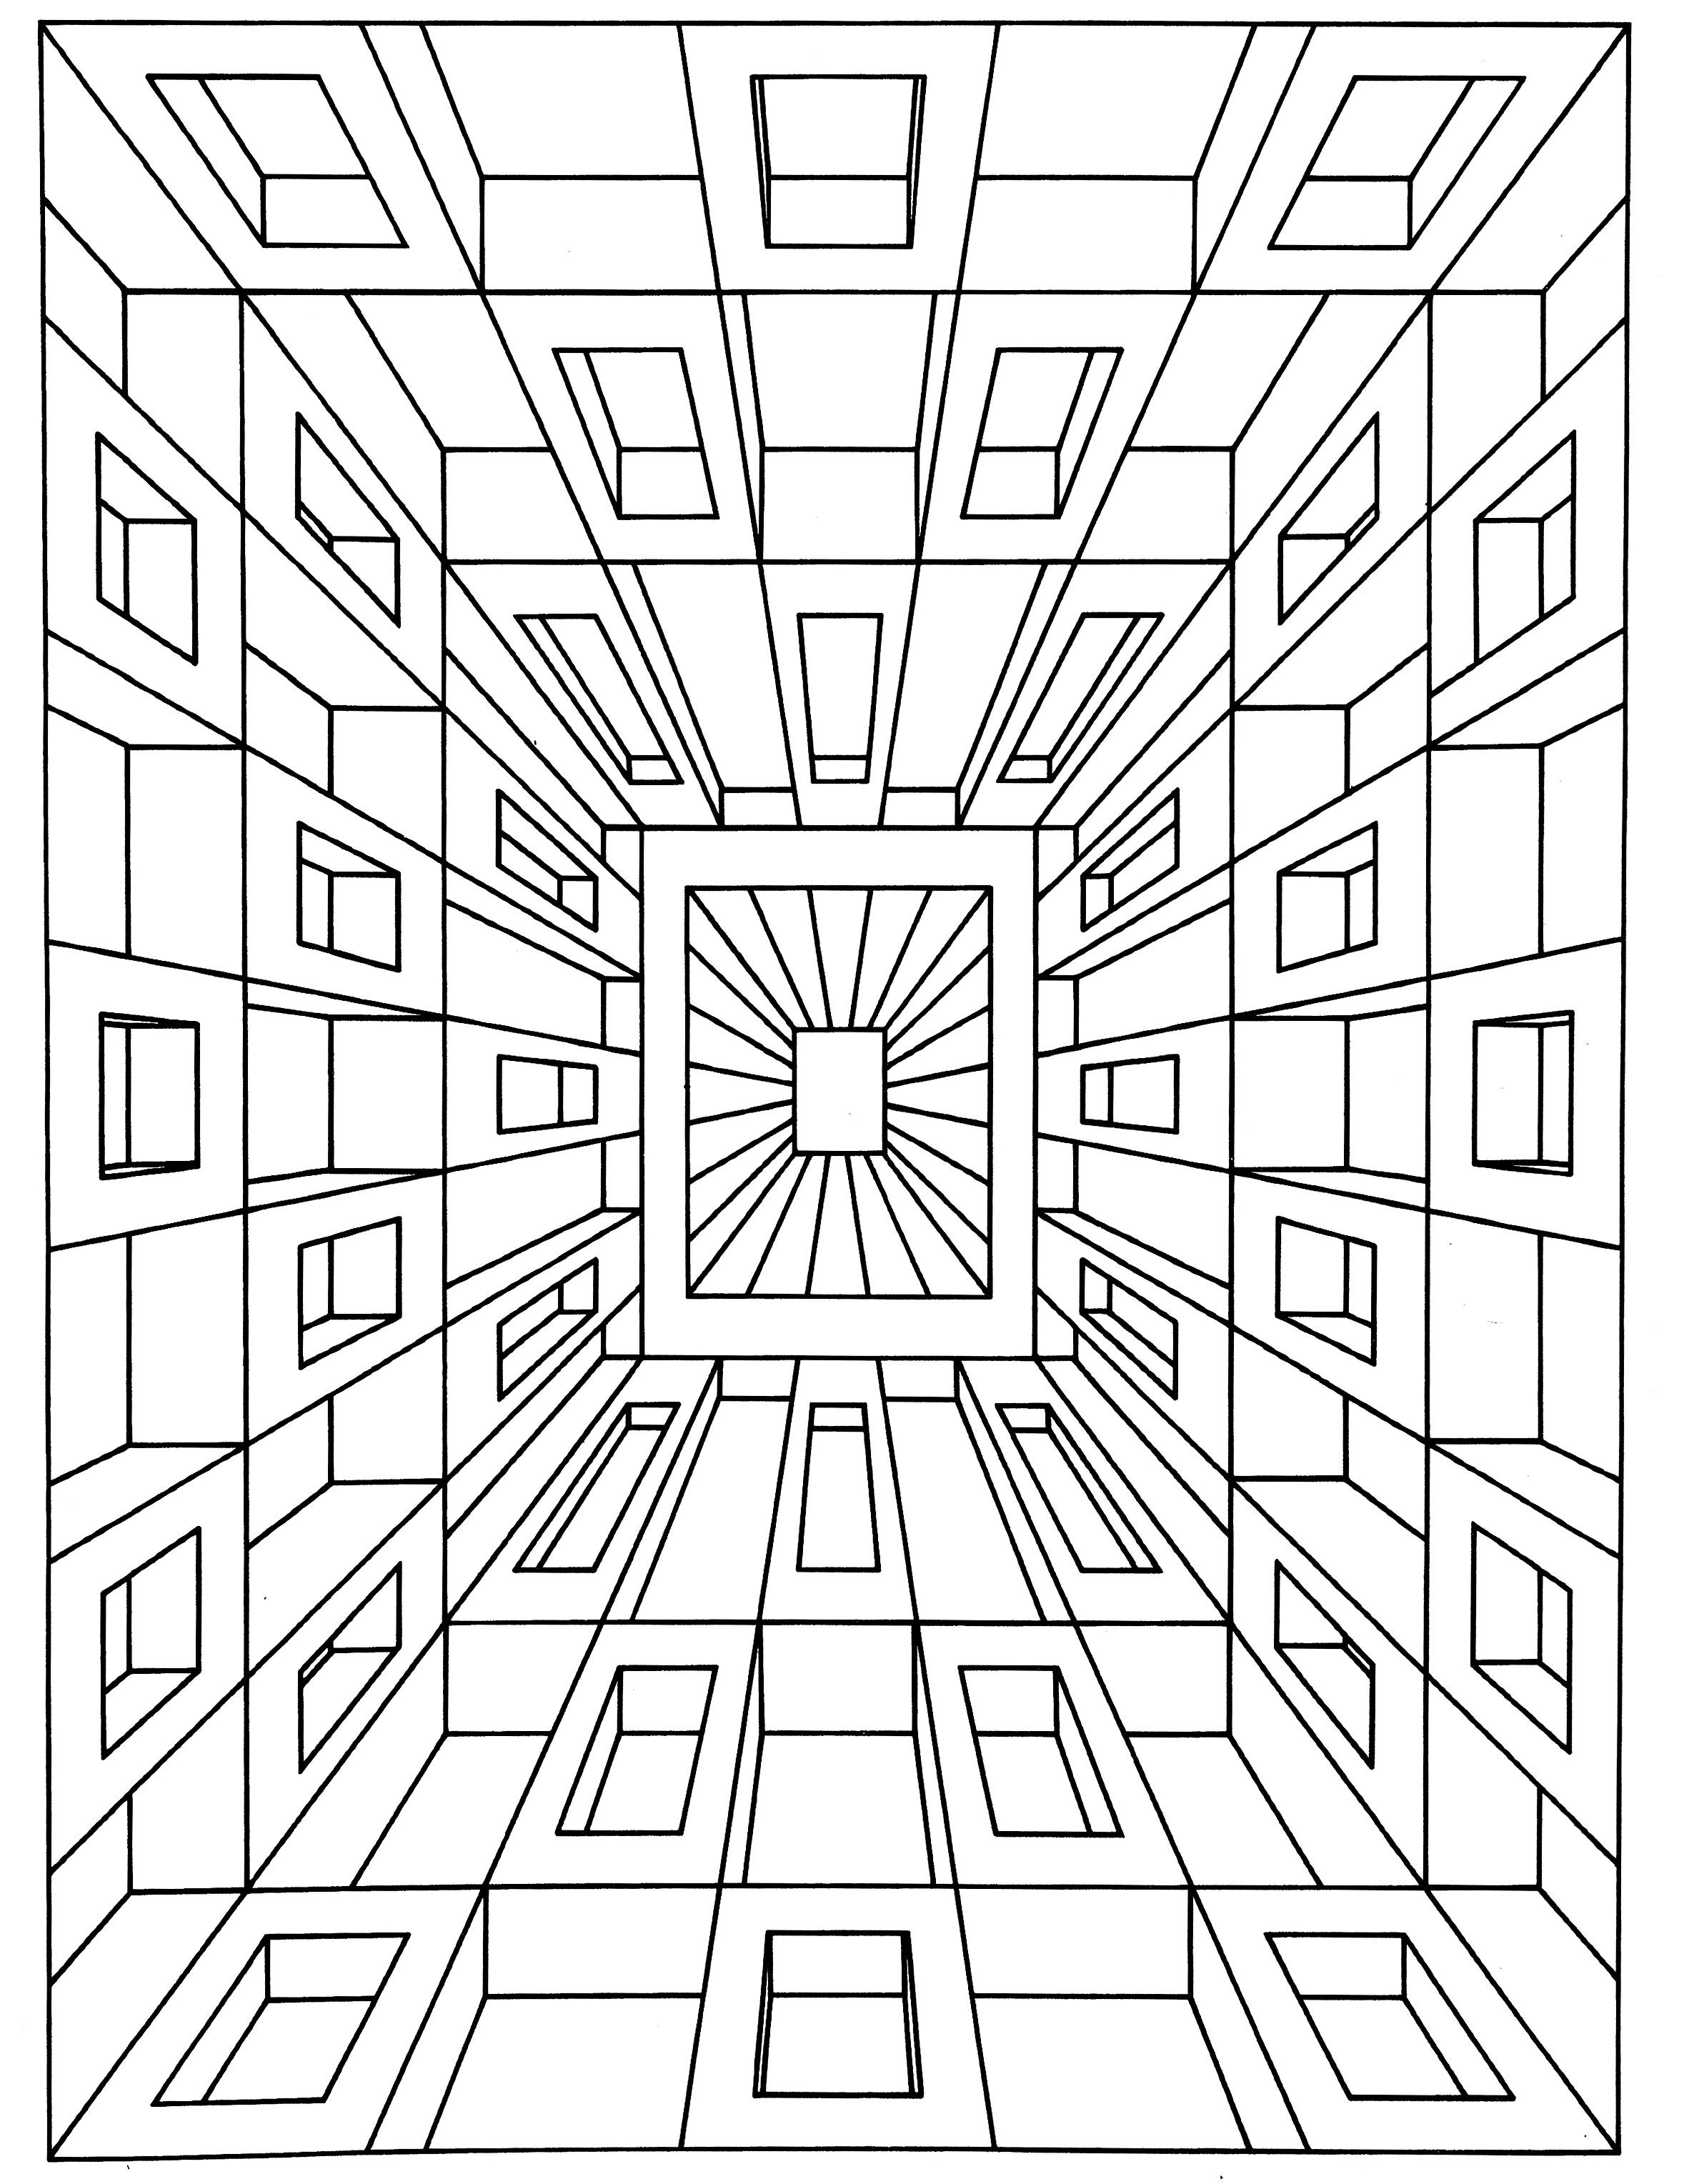 To Print This Free Coloring Page Coloring Op Art Jean Larcher 1 Click On The Printer Icon At